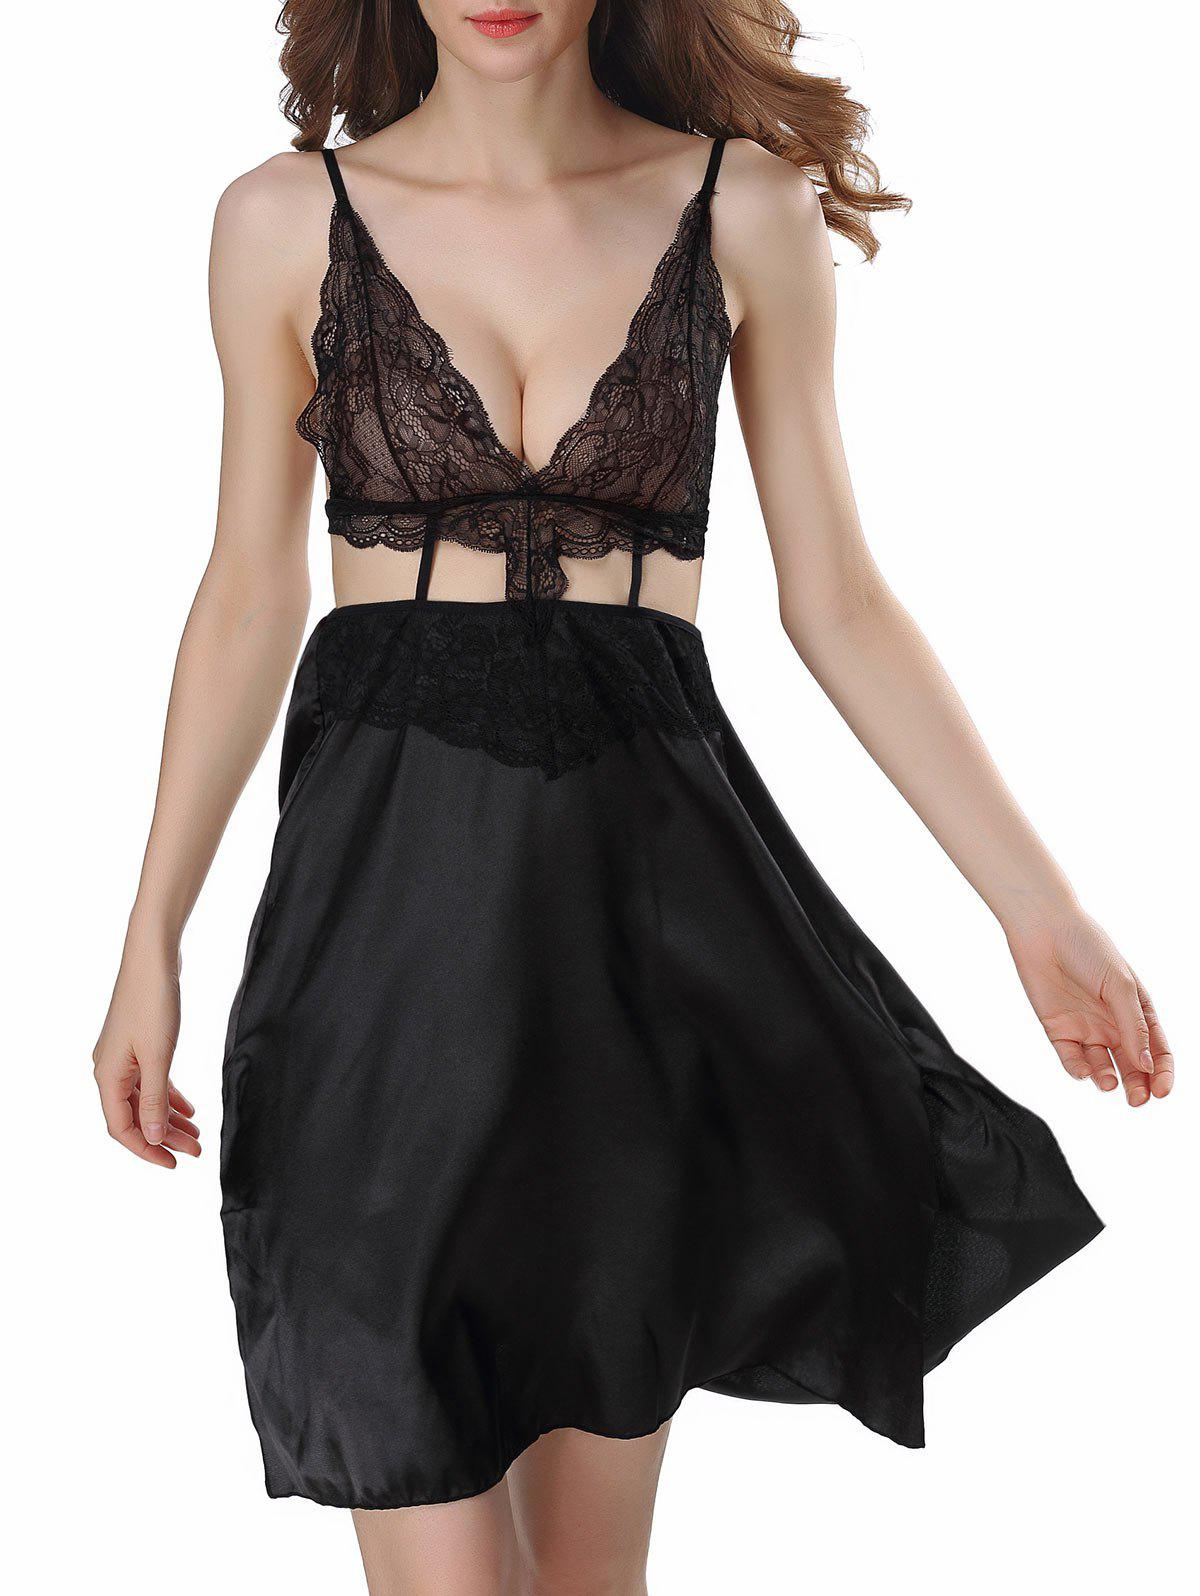 Backless Cut Out Satin Cami Dress - BLACK XL